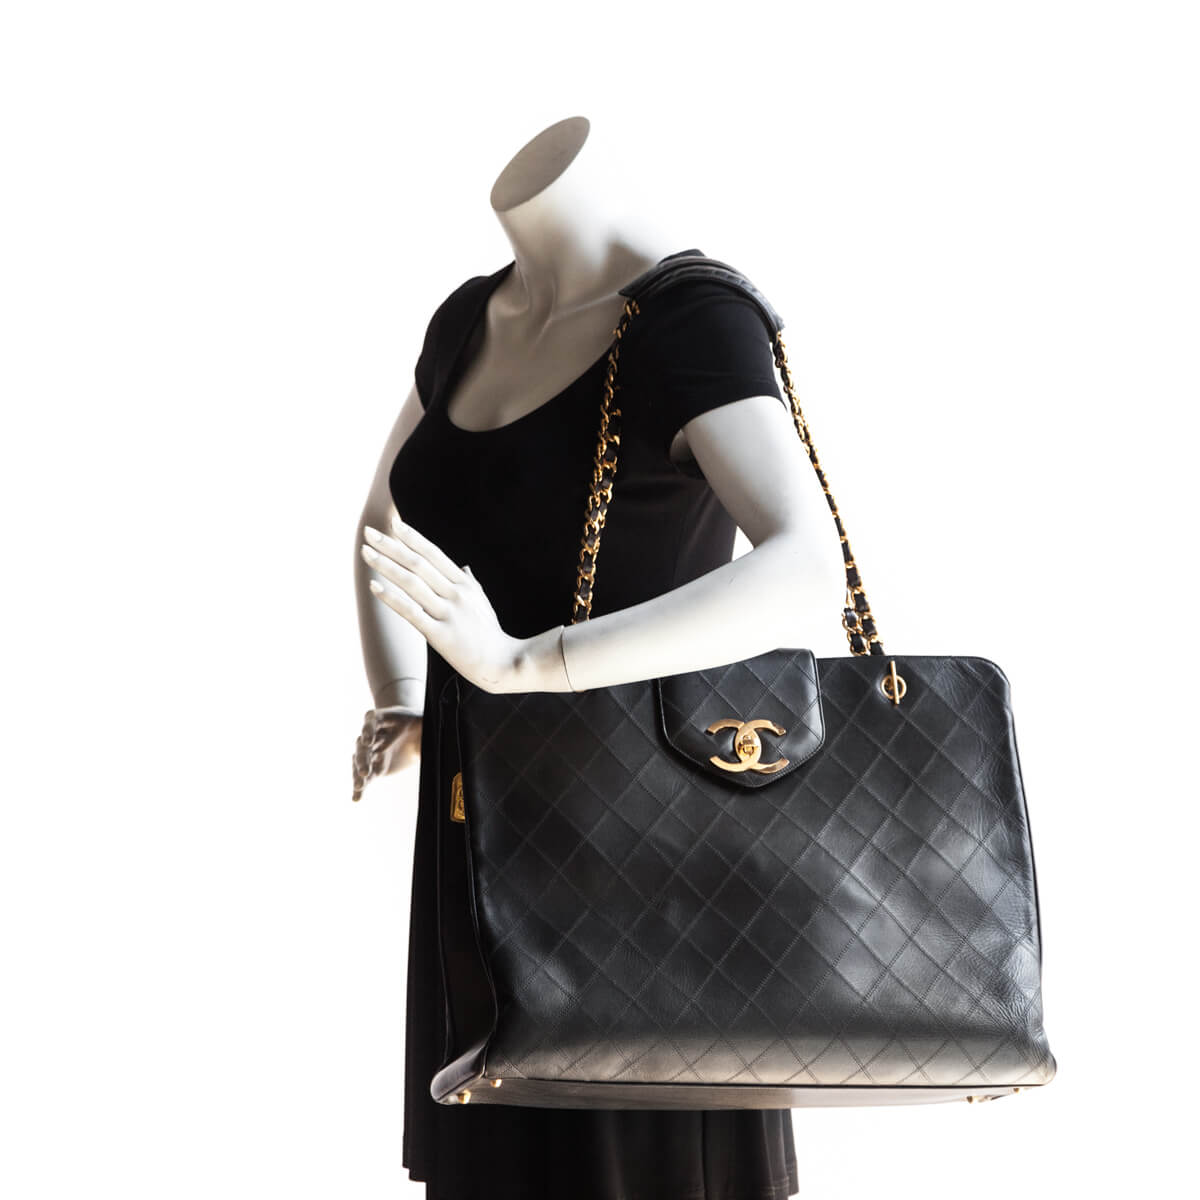 0ddc2c5f2b01 ... Chanel Black Lambskin Vintage Supermodel Tote - LOVE that BAG -  Preowned Authentic Designer Handbags